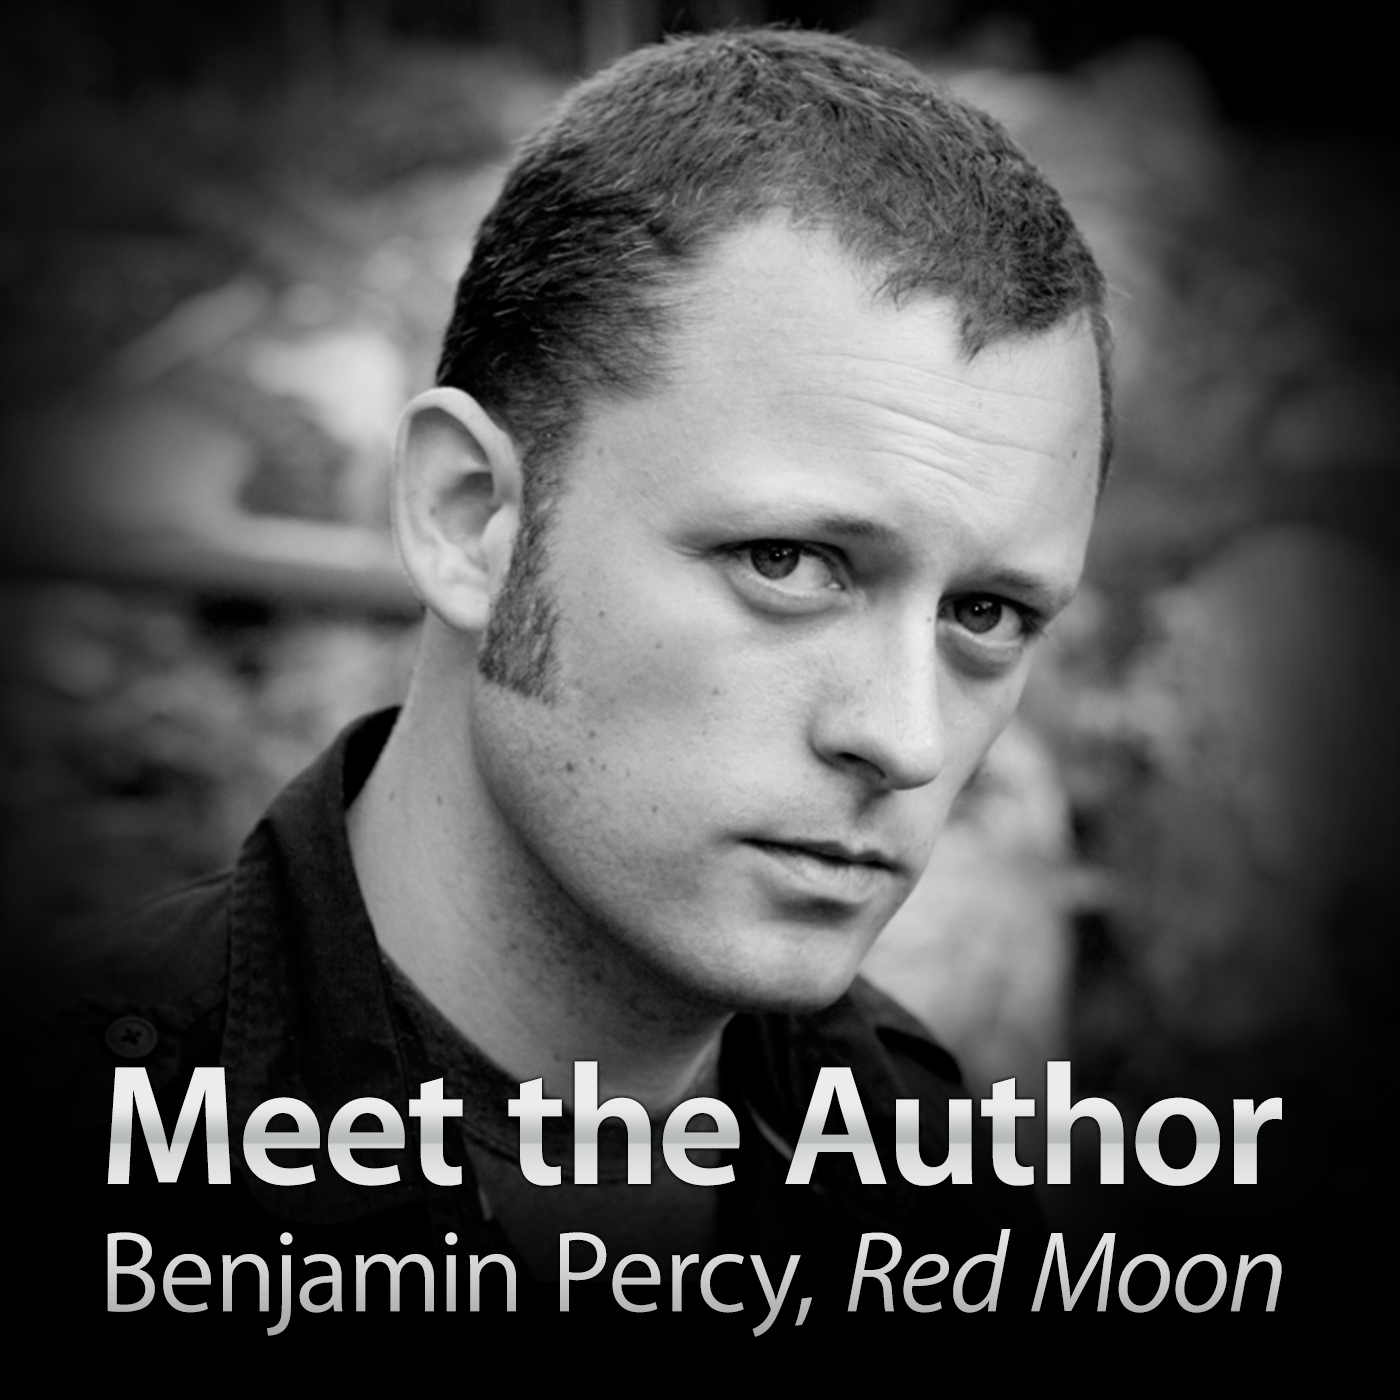 Benjamin Percy, Red Moon: Meet the Author